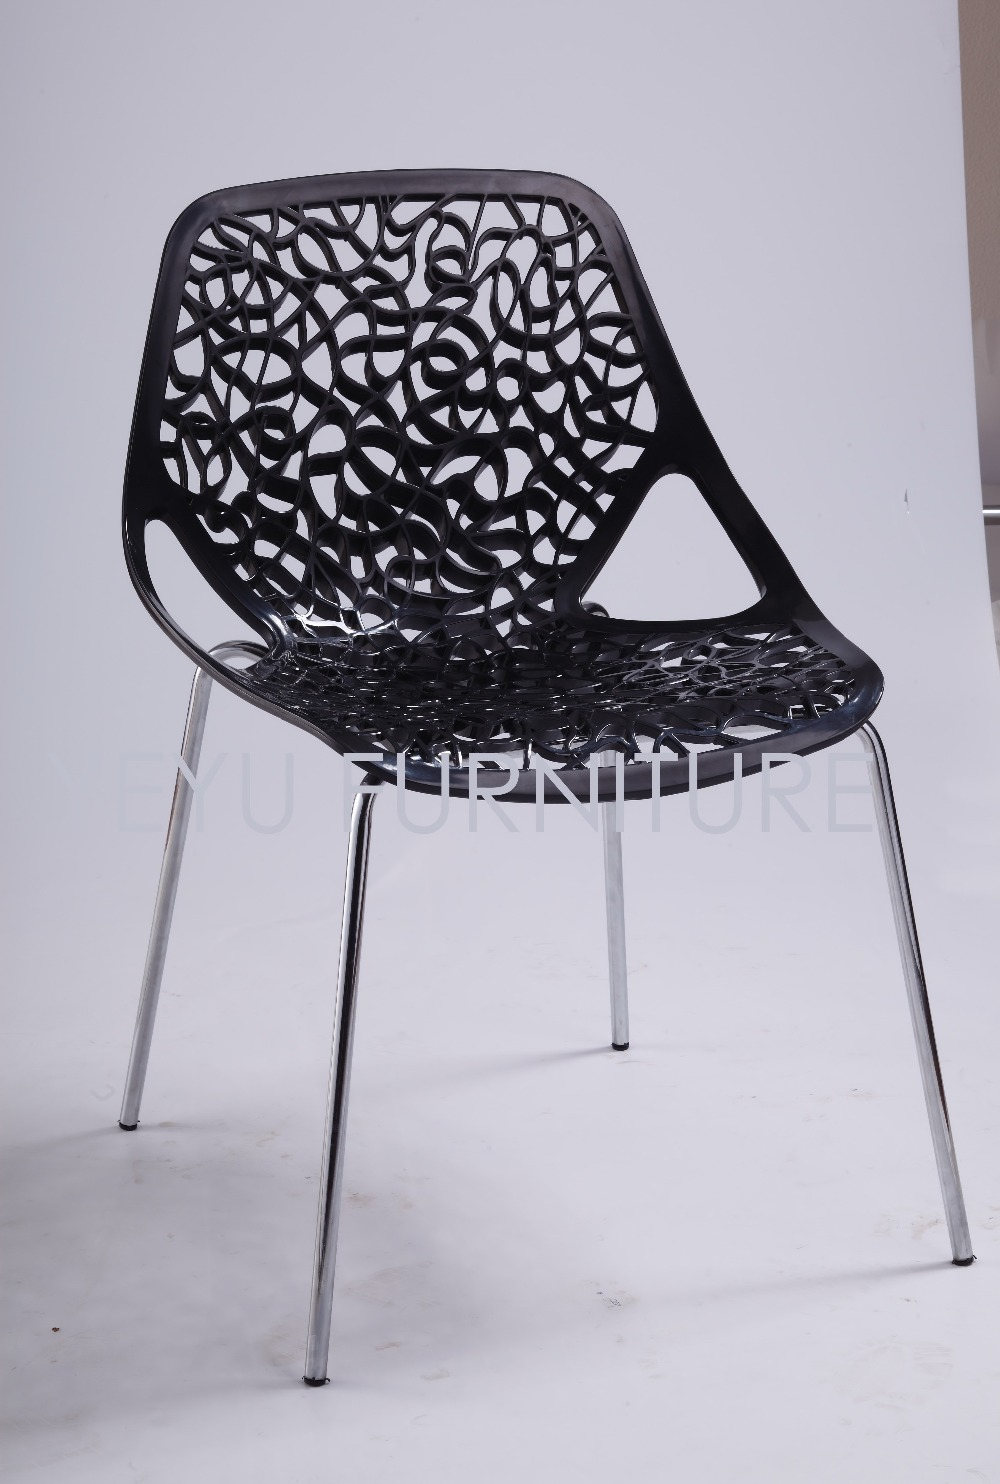 Swell Us 120 0 Minimalist Modern Design Plastic Pp Seat And Metal Steel Leg Base Side Dining Chair Fashion Living Room Leisure Chair Furniture In Dining Caraccident5 Cool Chair Designs And Ideas Caraccident5Info